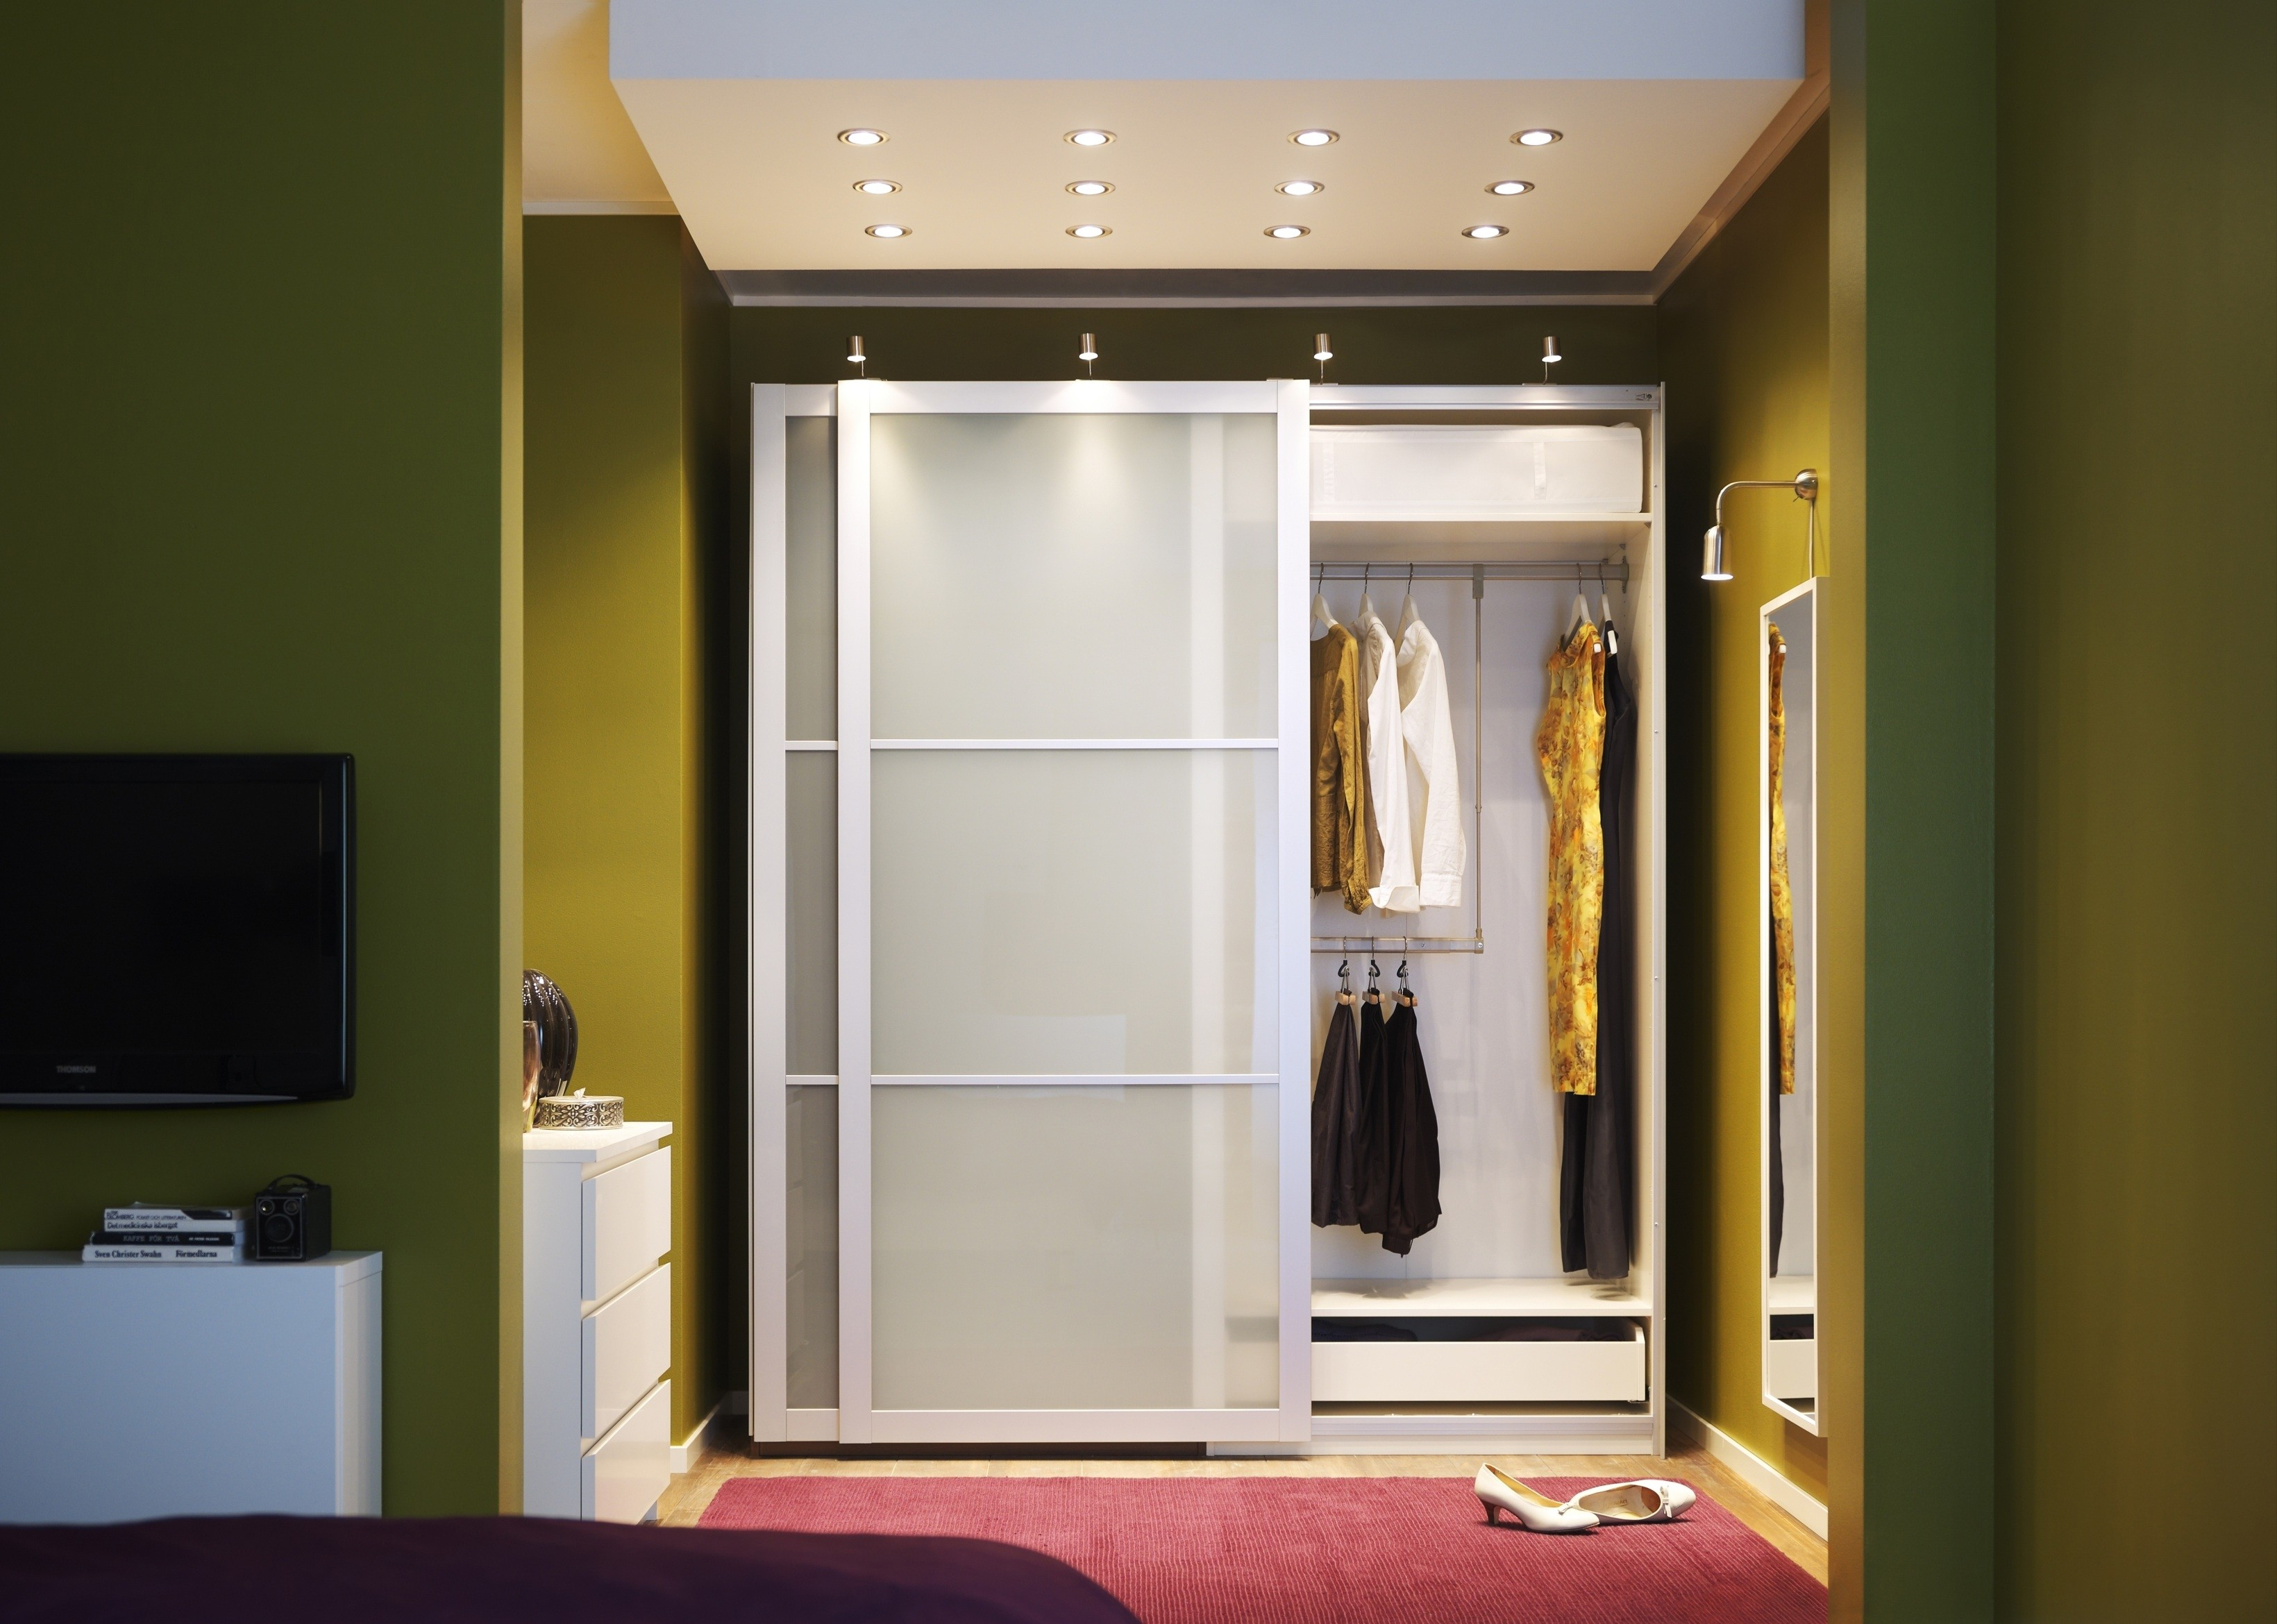 interior-frozen-glass-sliding-doors-with-white-wooden-frame-for-closet-placed-in-the-green-wall-room-sliding-closet-doors-for-bedrooms